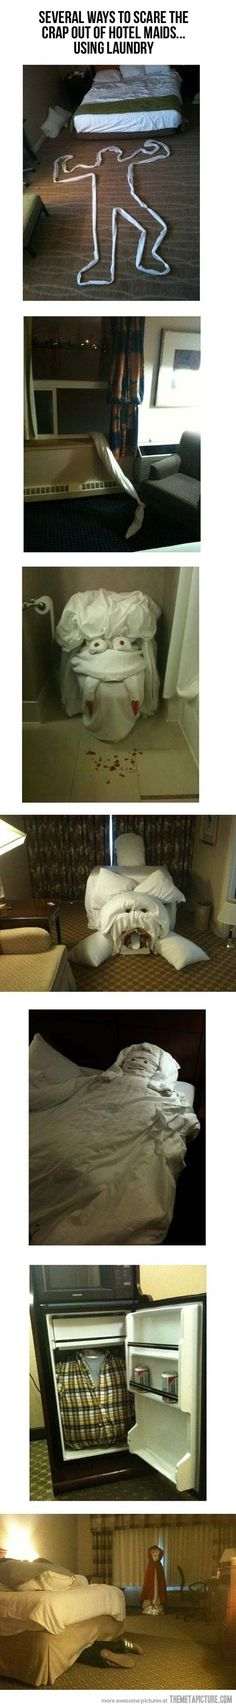 Before leaving your hotel room :)